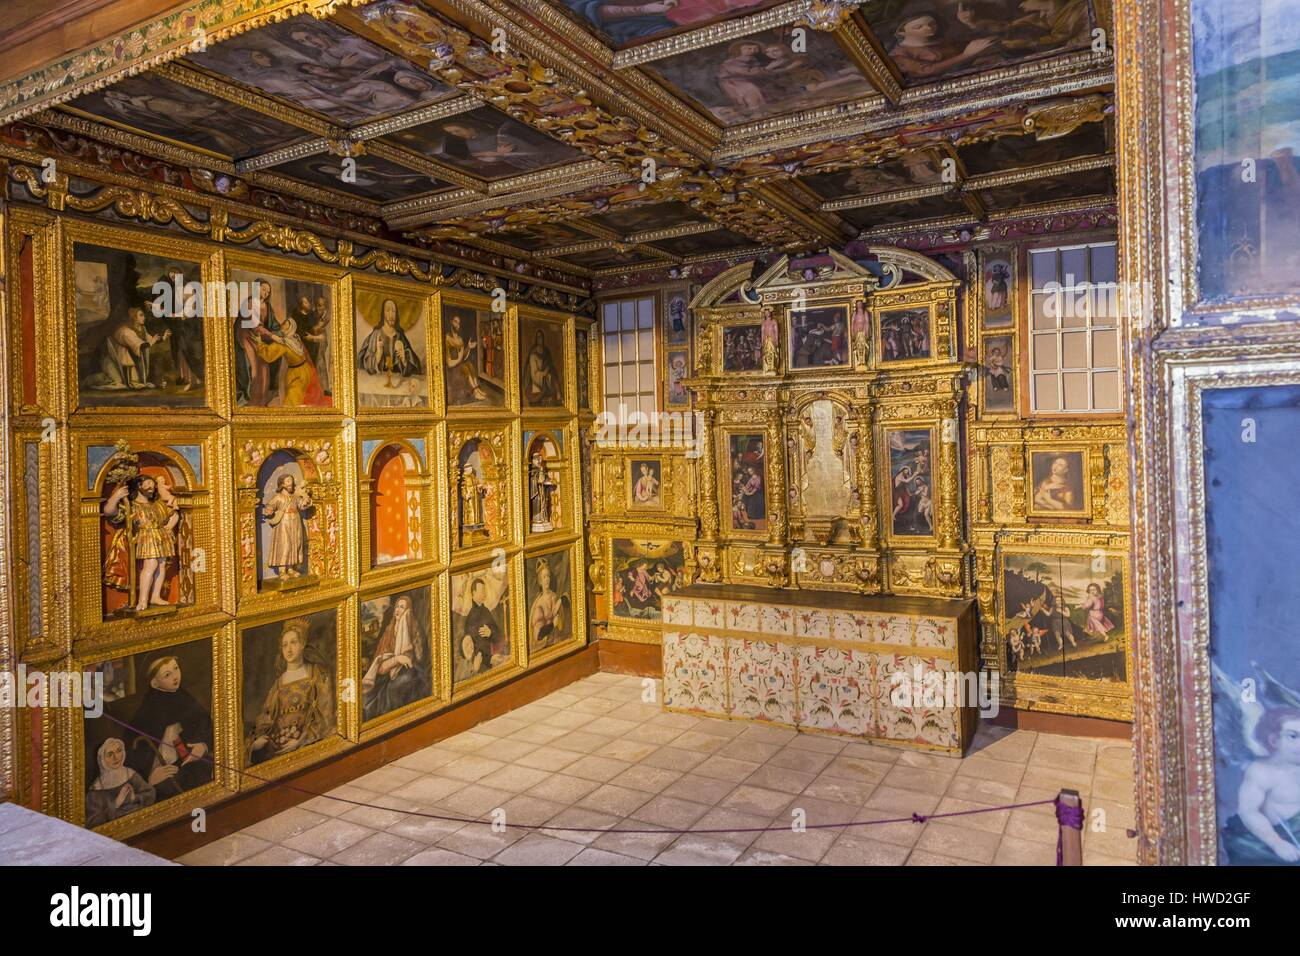 Portugal, Douro, Lamego, northern region, district of Viseu, Museum in the former episcopal palace, Saint-Jean-Baptiste - Stock Image